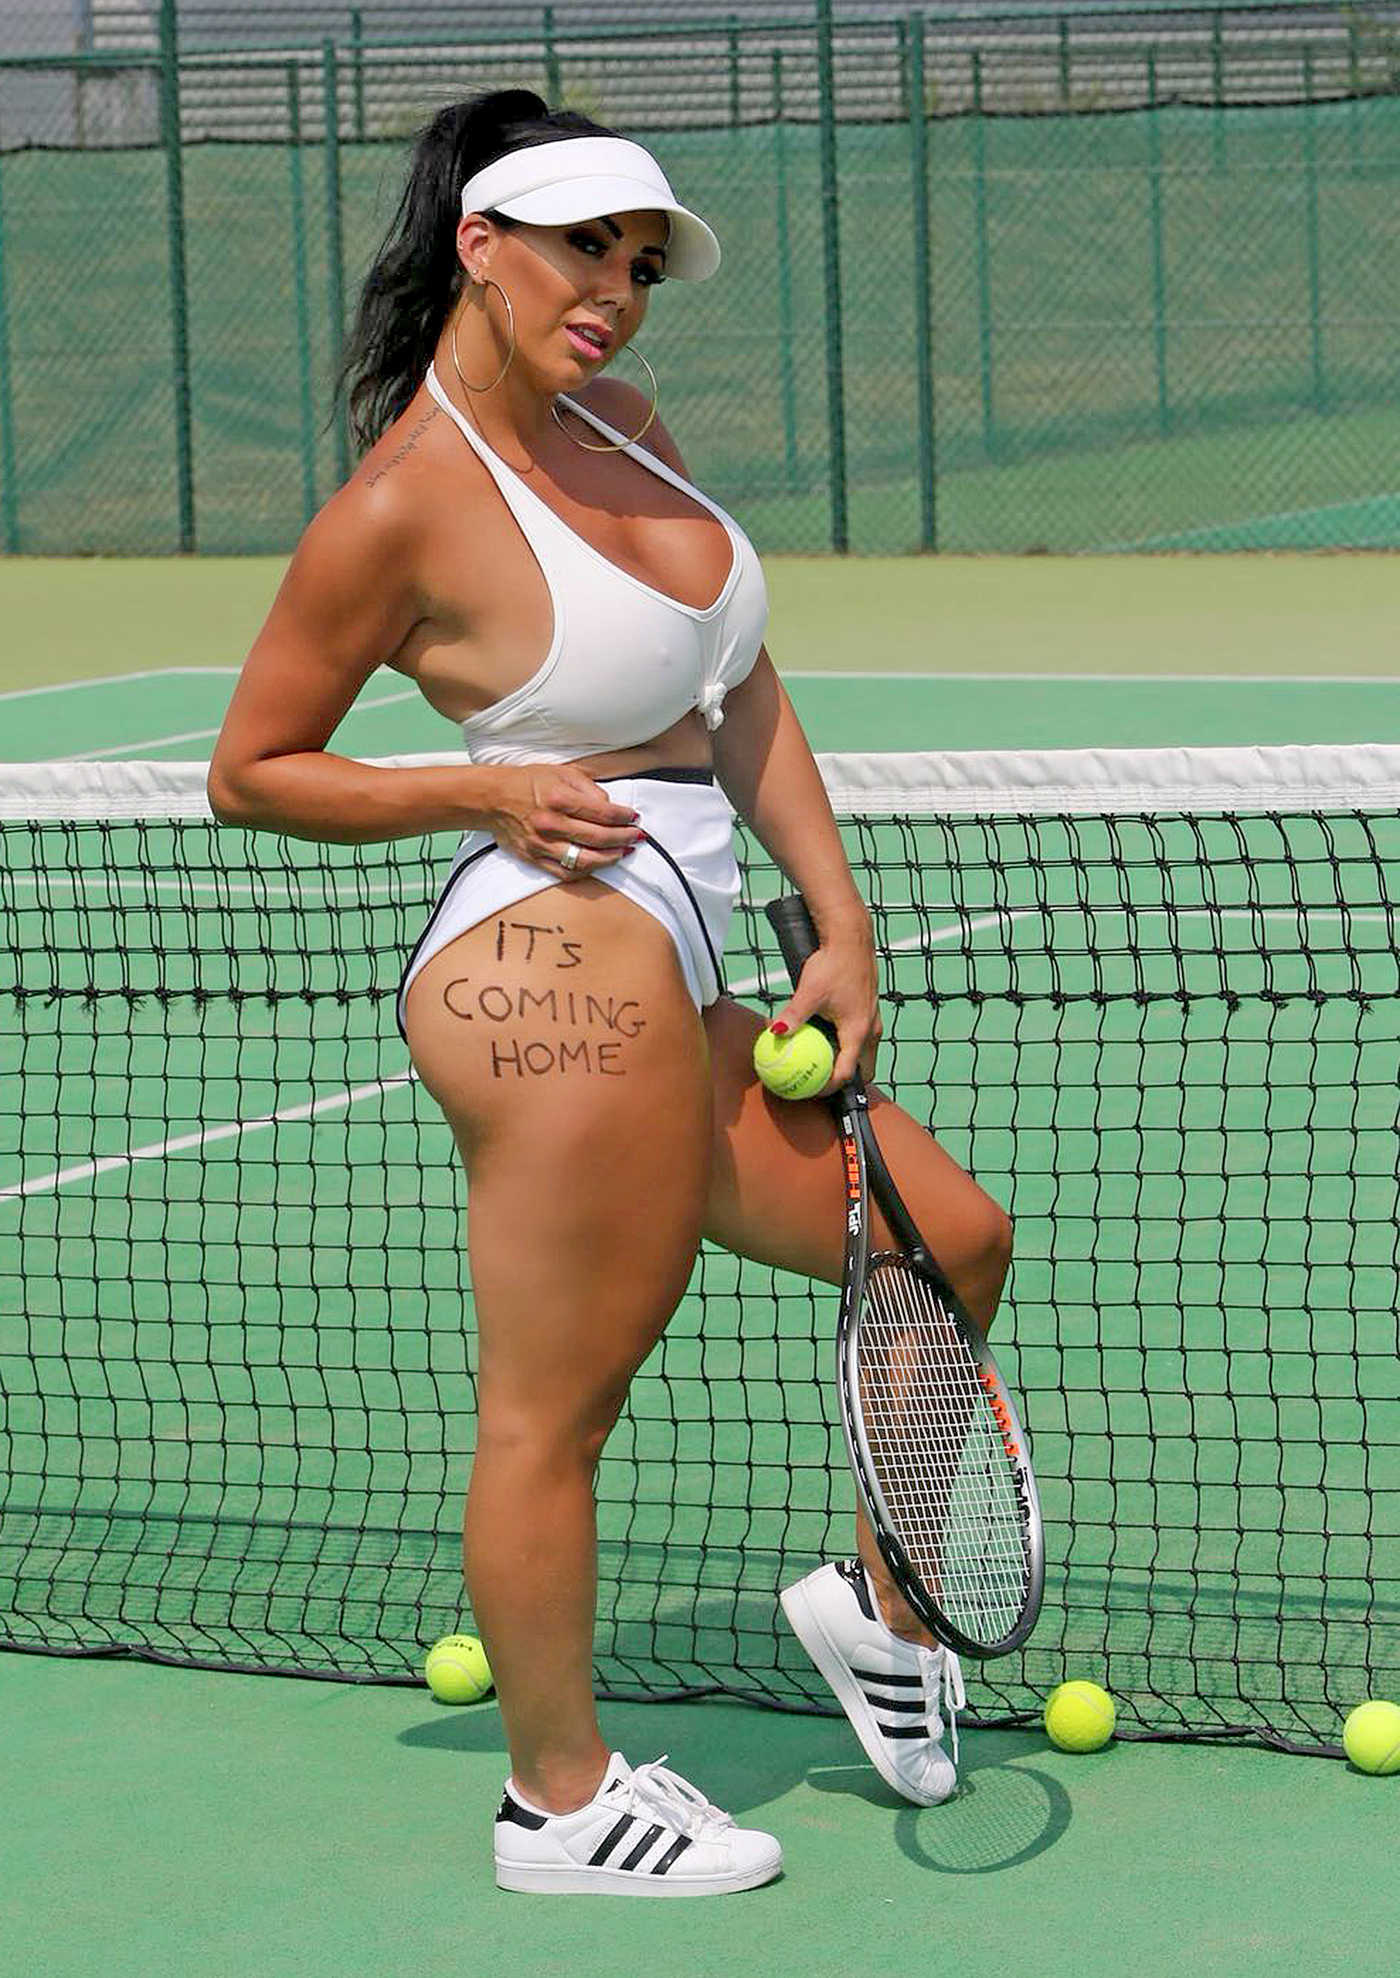 Grace J Teal on the Set of Tennis Poster in Southend 07/08/2018